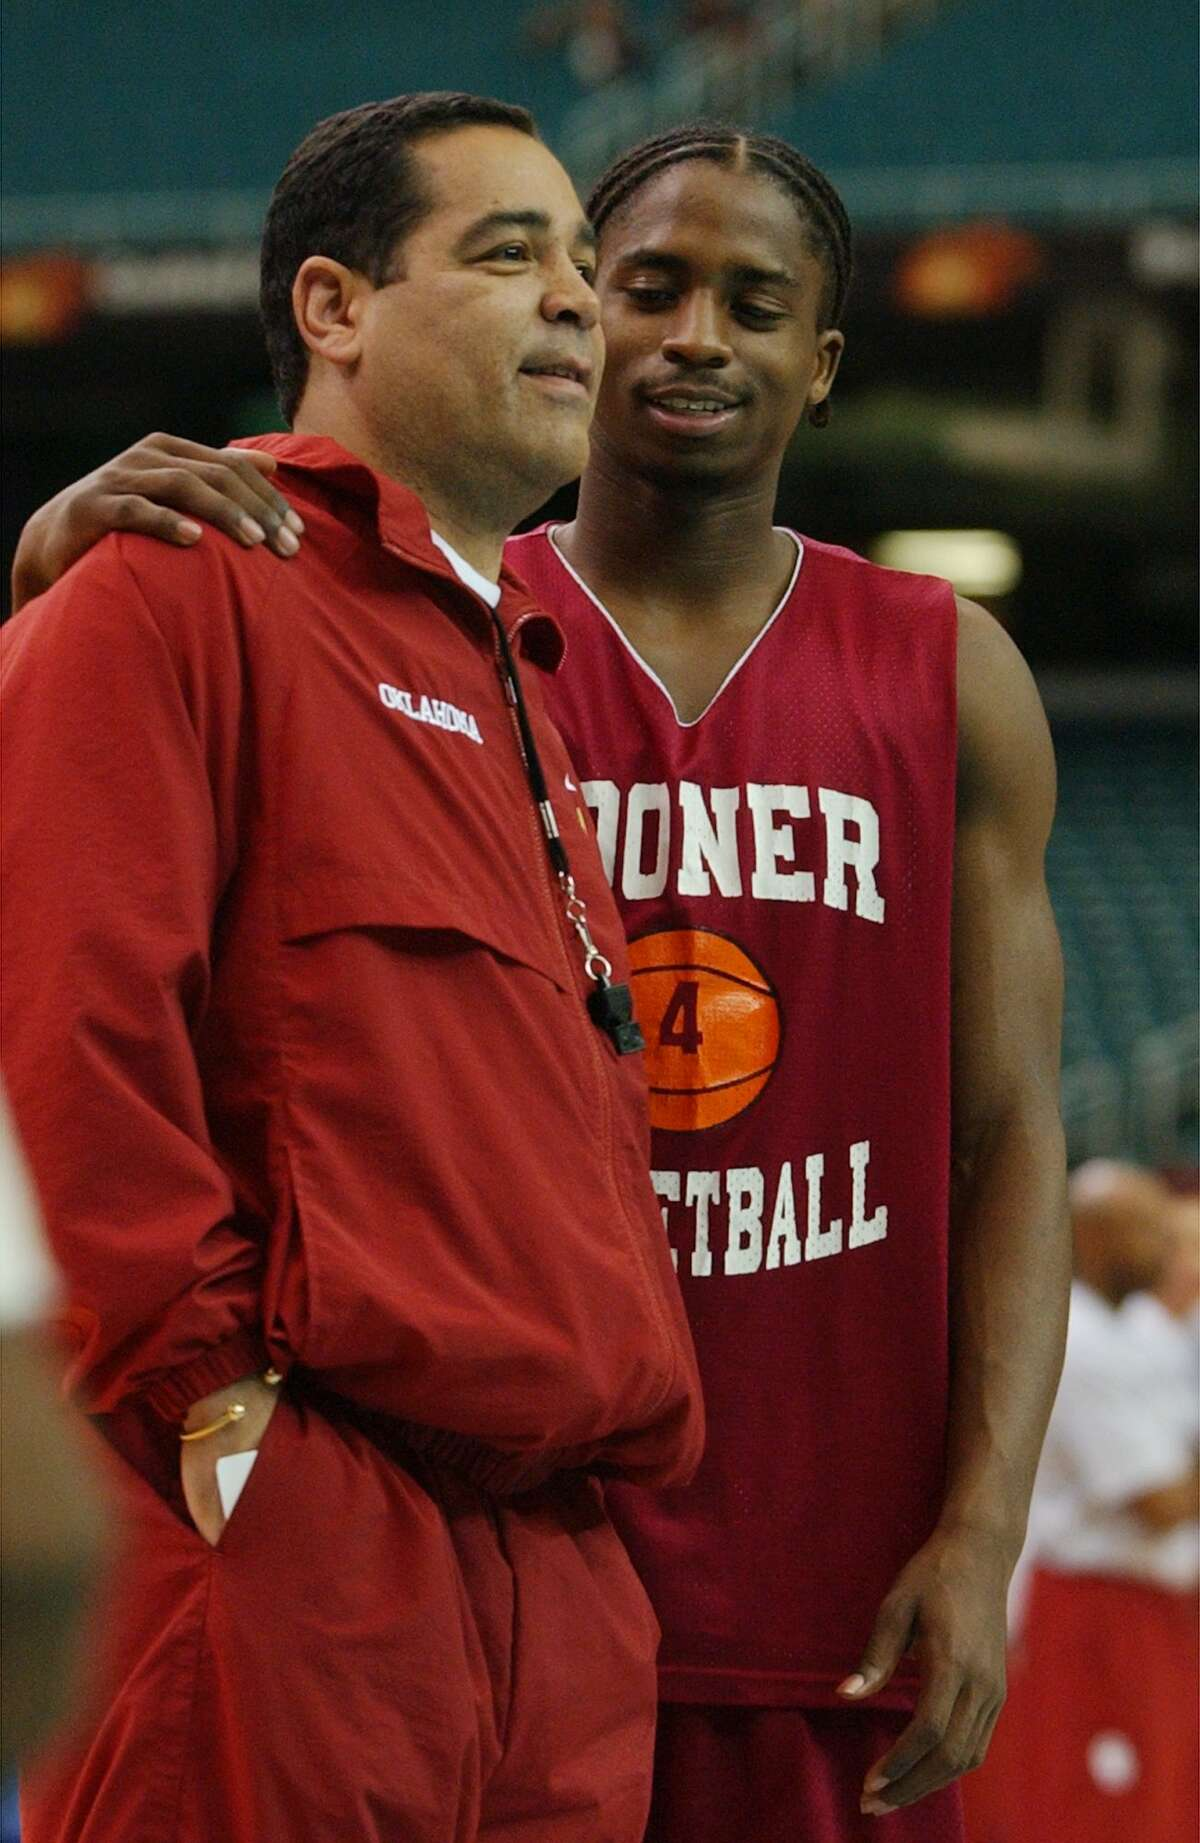 KRT SPORTS STORY SLUGGED: FINALFOUR KRT PHOTOGRAPH BY PATRICK SCHNEIDER/CHARLOTTE OBSERVER (March 26) ATLANTA, GA - Quanna White, will now serve as an assistant coach to head coach Kelvin Sampson, after playing for him as a Sooner.